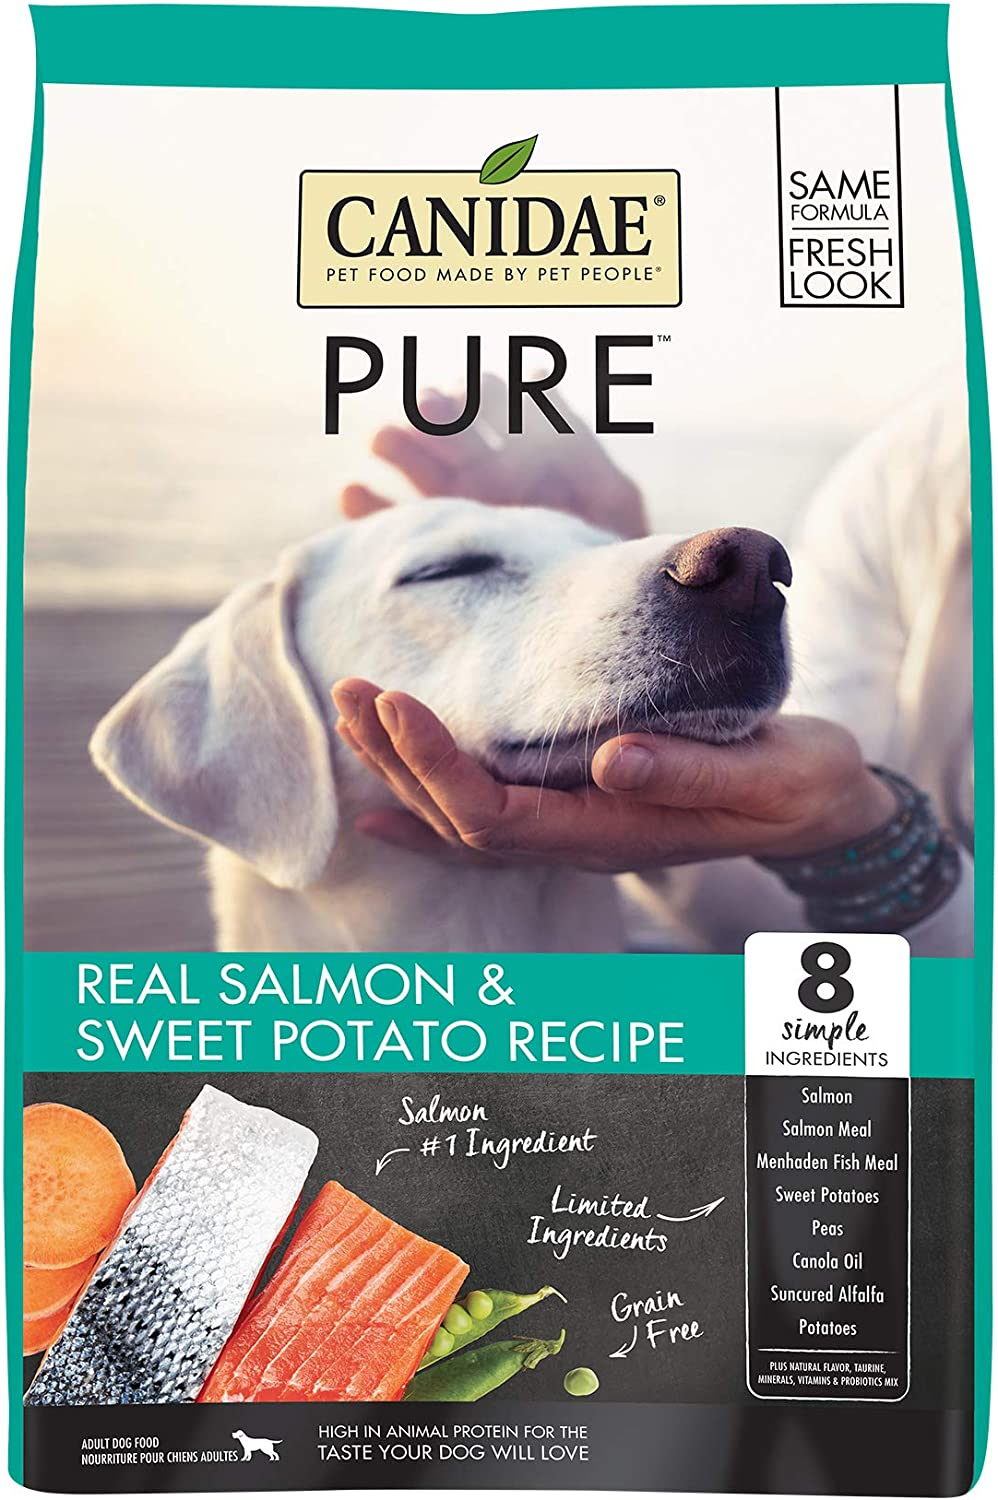 Canidae PURE Grain Free, Limited Ingredient Dry Dog Food, Salmon and Sweet Potato, 12lbs